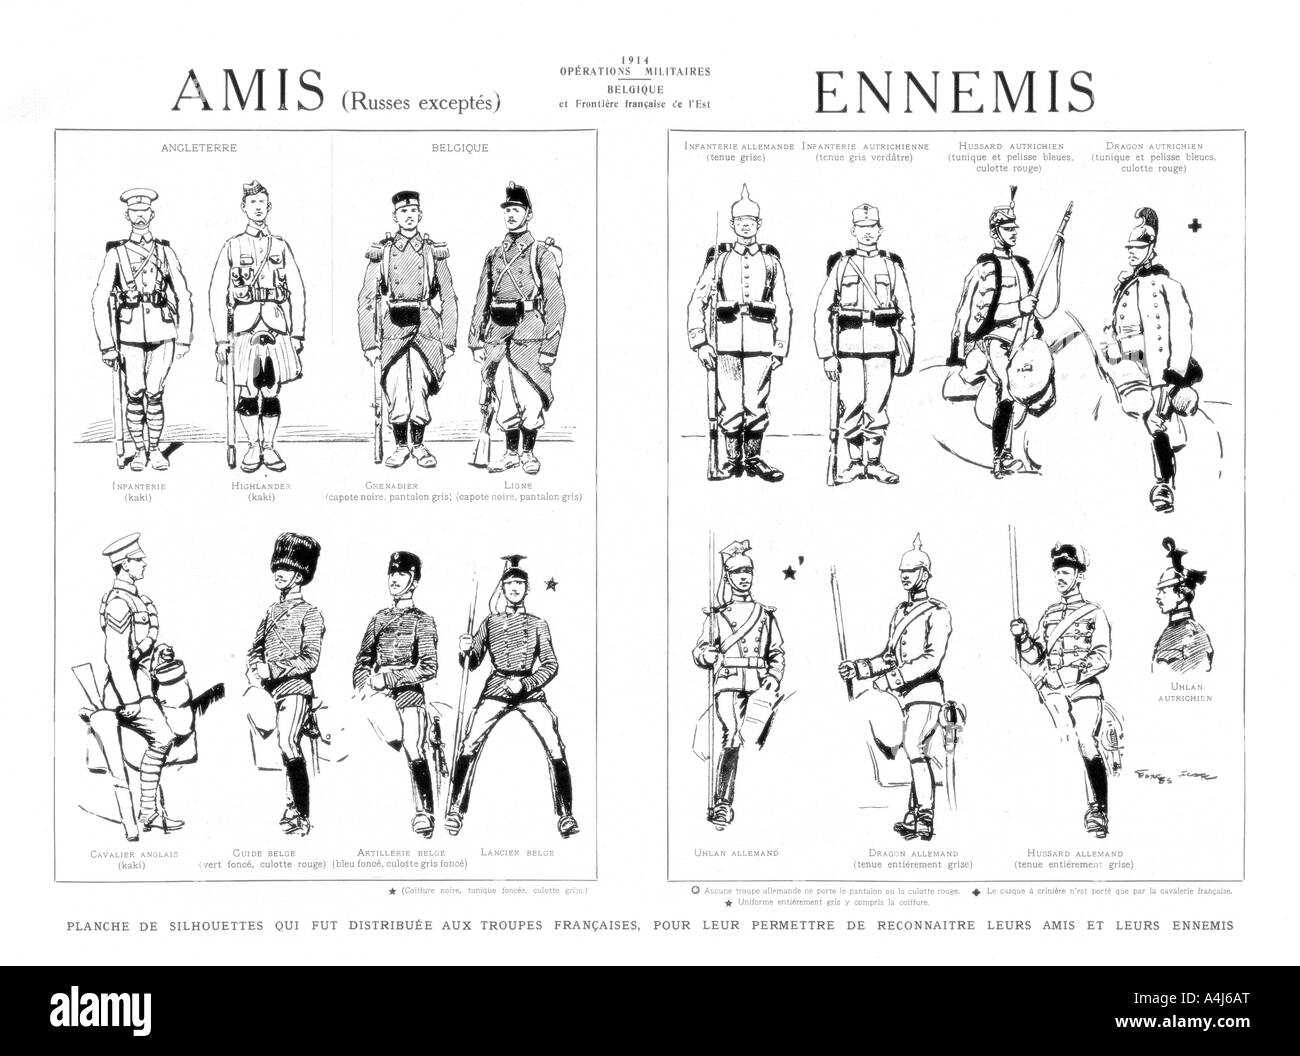 Friends and Enemies 1914  - Stock Image